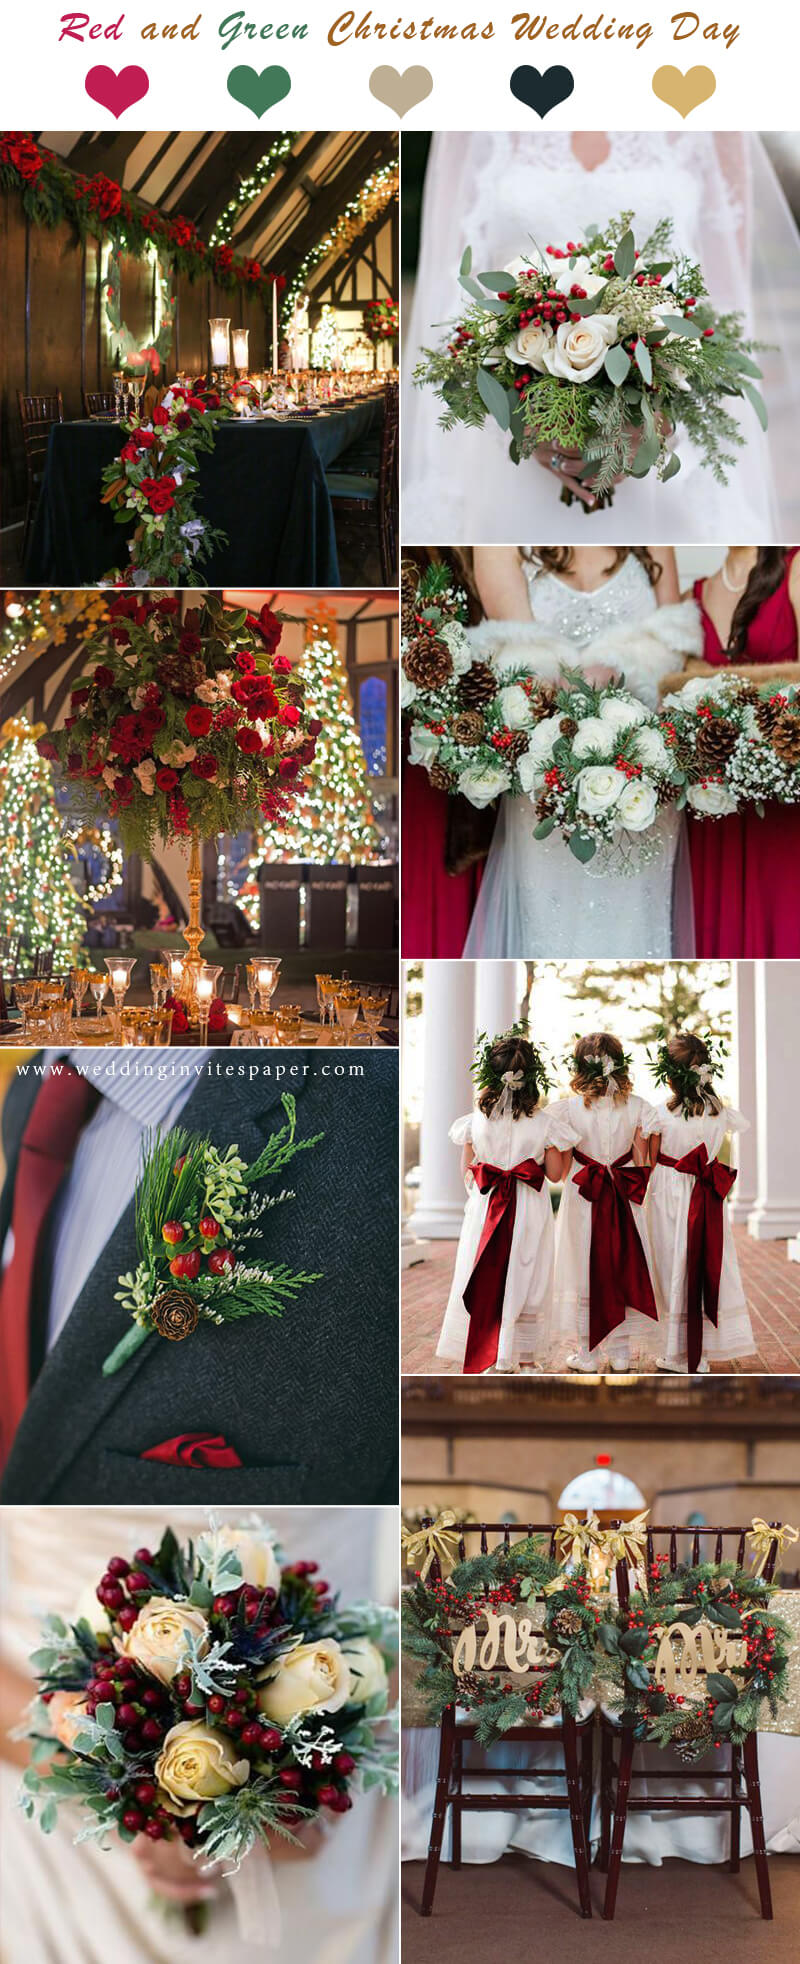 Red and Green Christmas Wedding Day.jpg